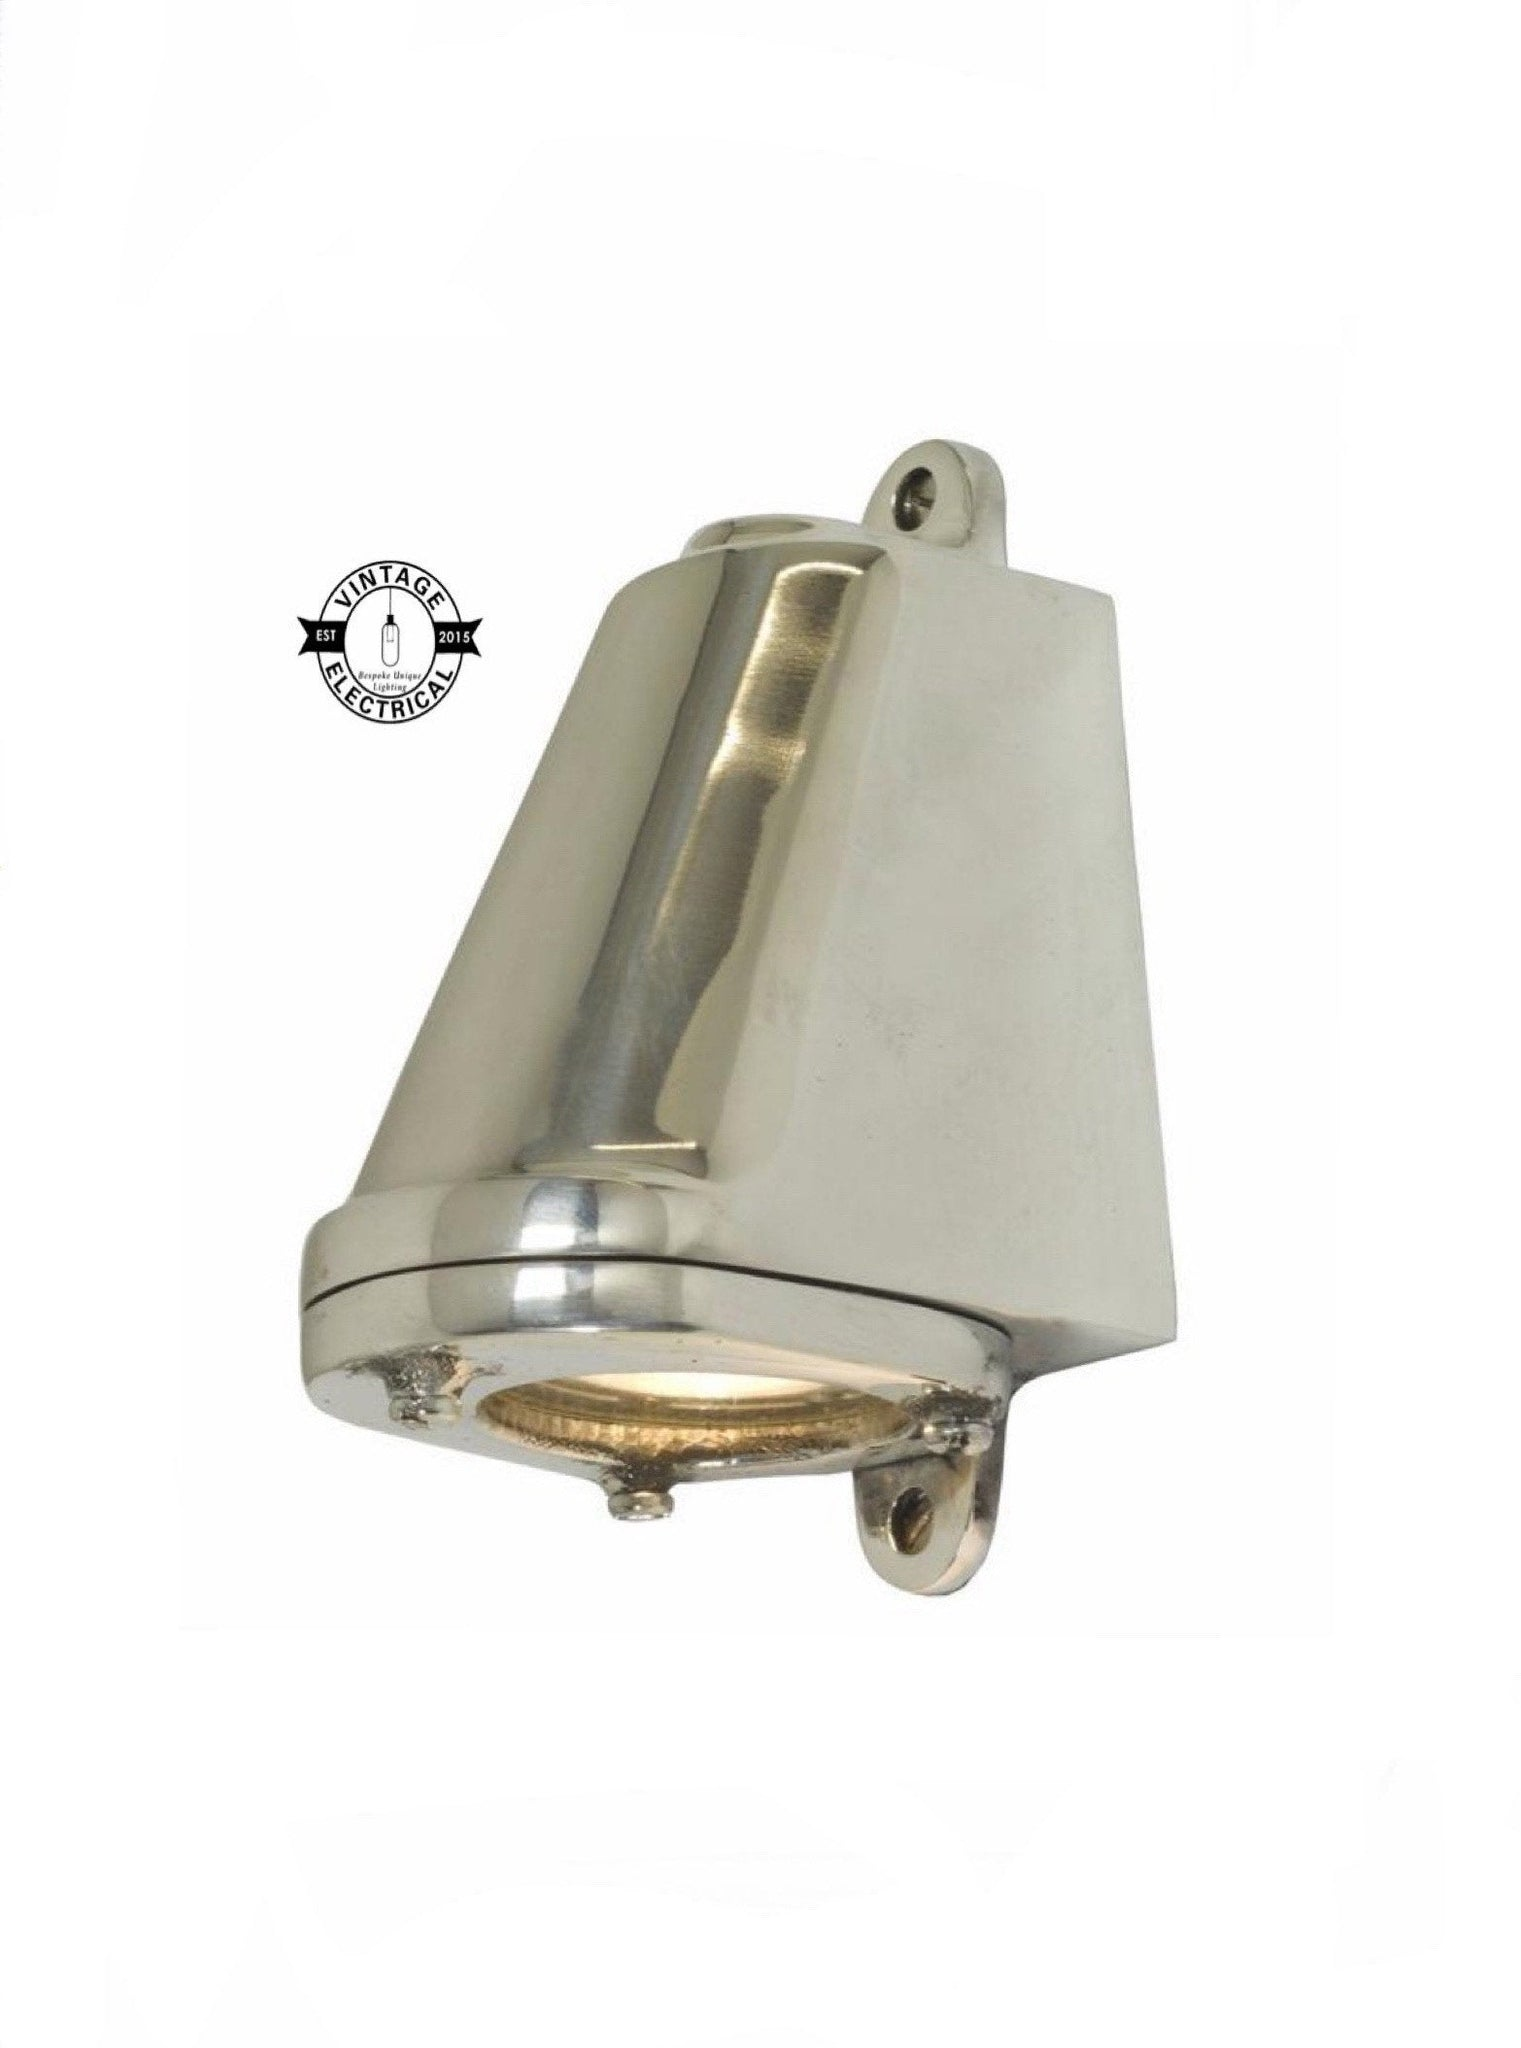 Holt ~ Polished Aluminium | Mast Down Light Industrial Ship Sconce Marine Bulkhead Hand Crafted Wall Nautical Passage Way Philips 3.8W LED